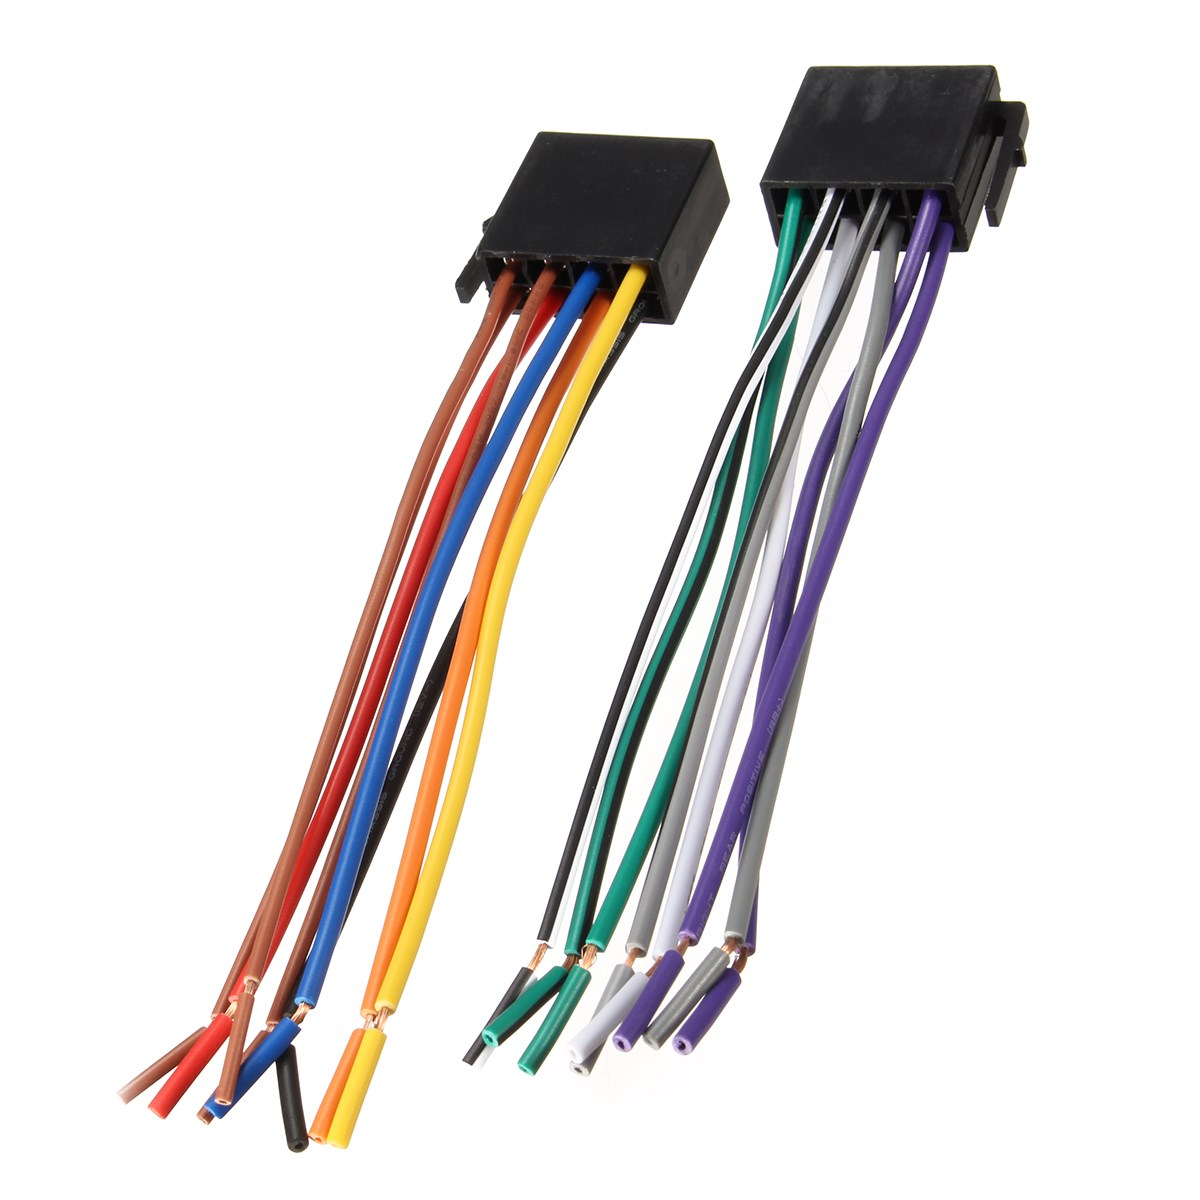 Wiring Harness Plug Ends : Online buy wholesale wire harness connector from china